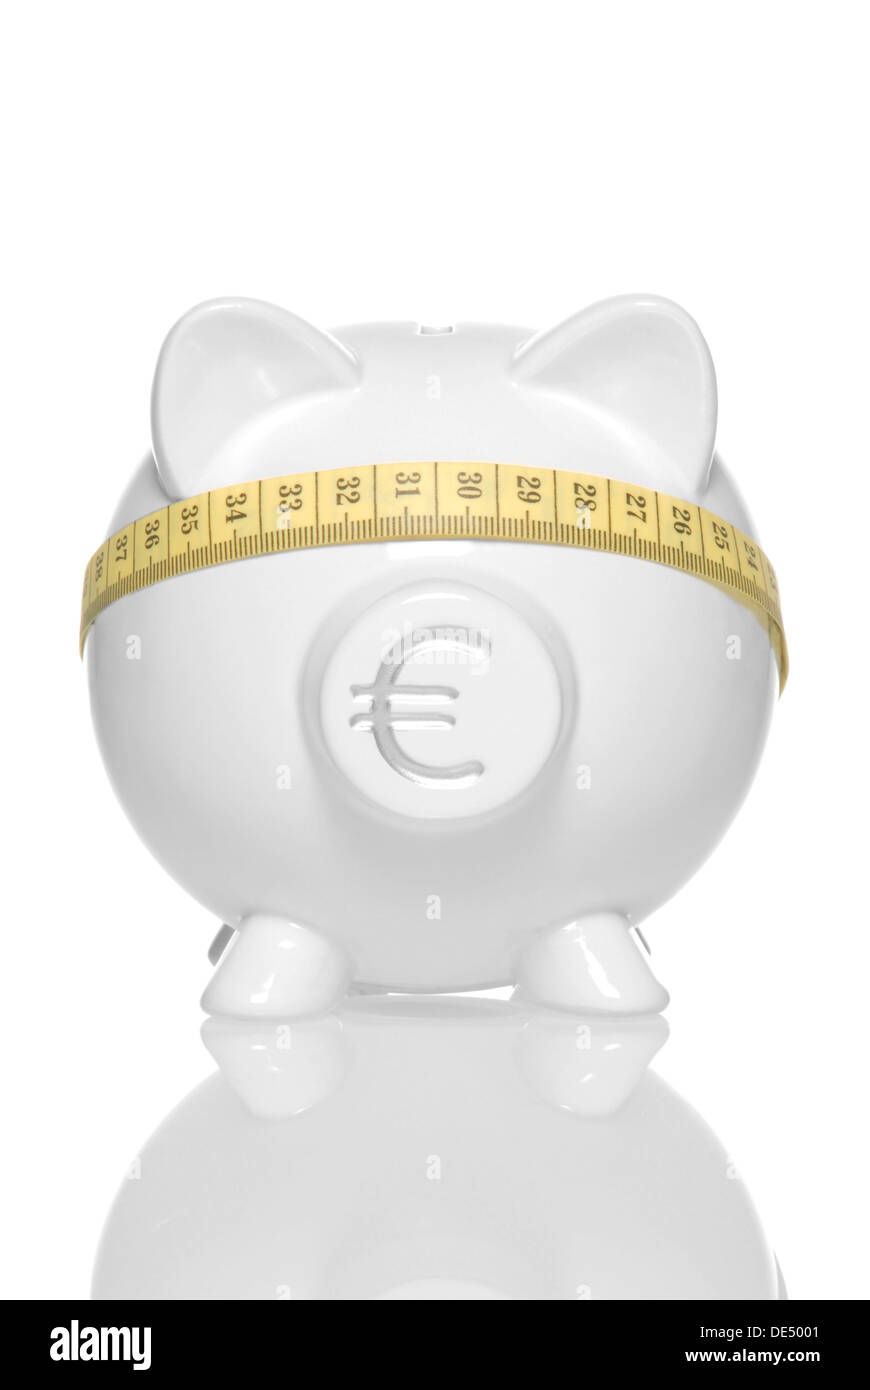 Piggy bank with Euro currency sign and tape measure over its eyes, symbolic image for 'blind' savings in Europe - Stock Image